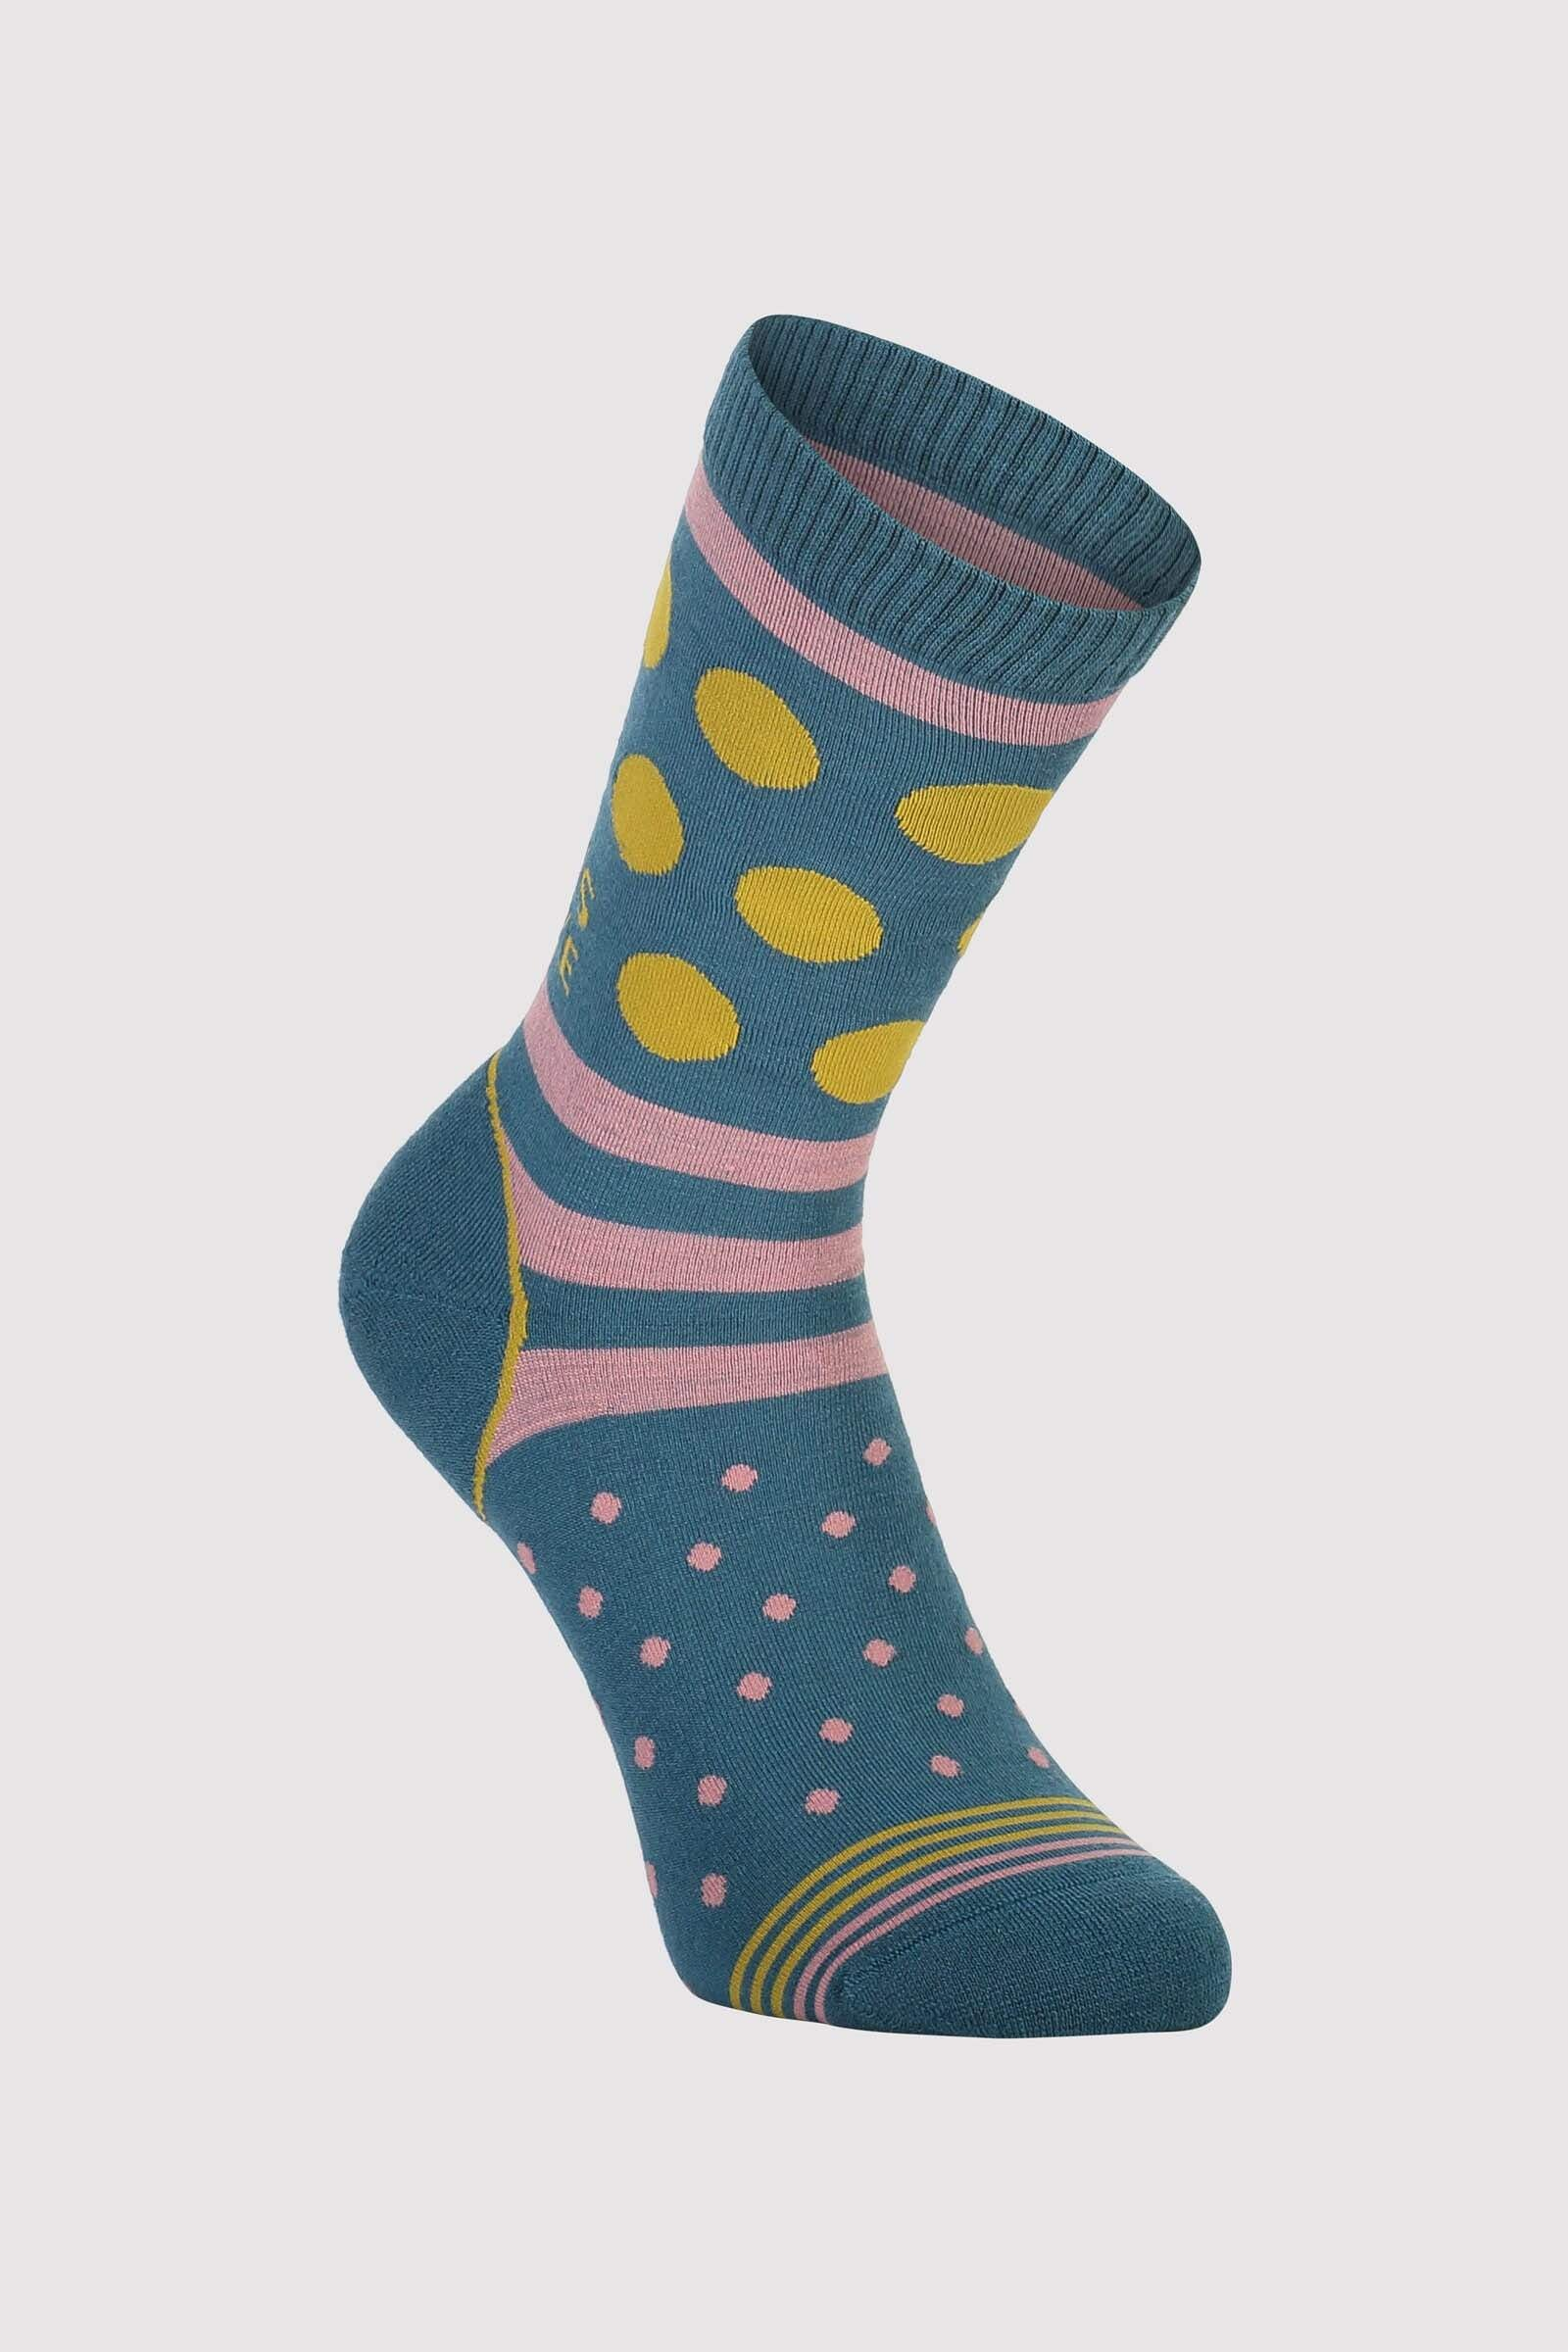 All Rounder Crew Sock Womens - Deep Teal / Pink Clay / Honey